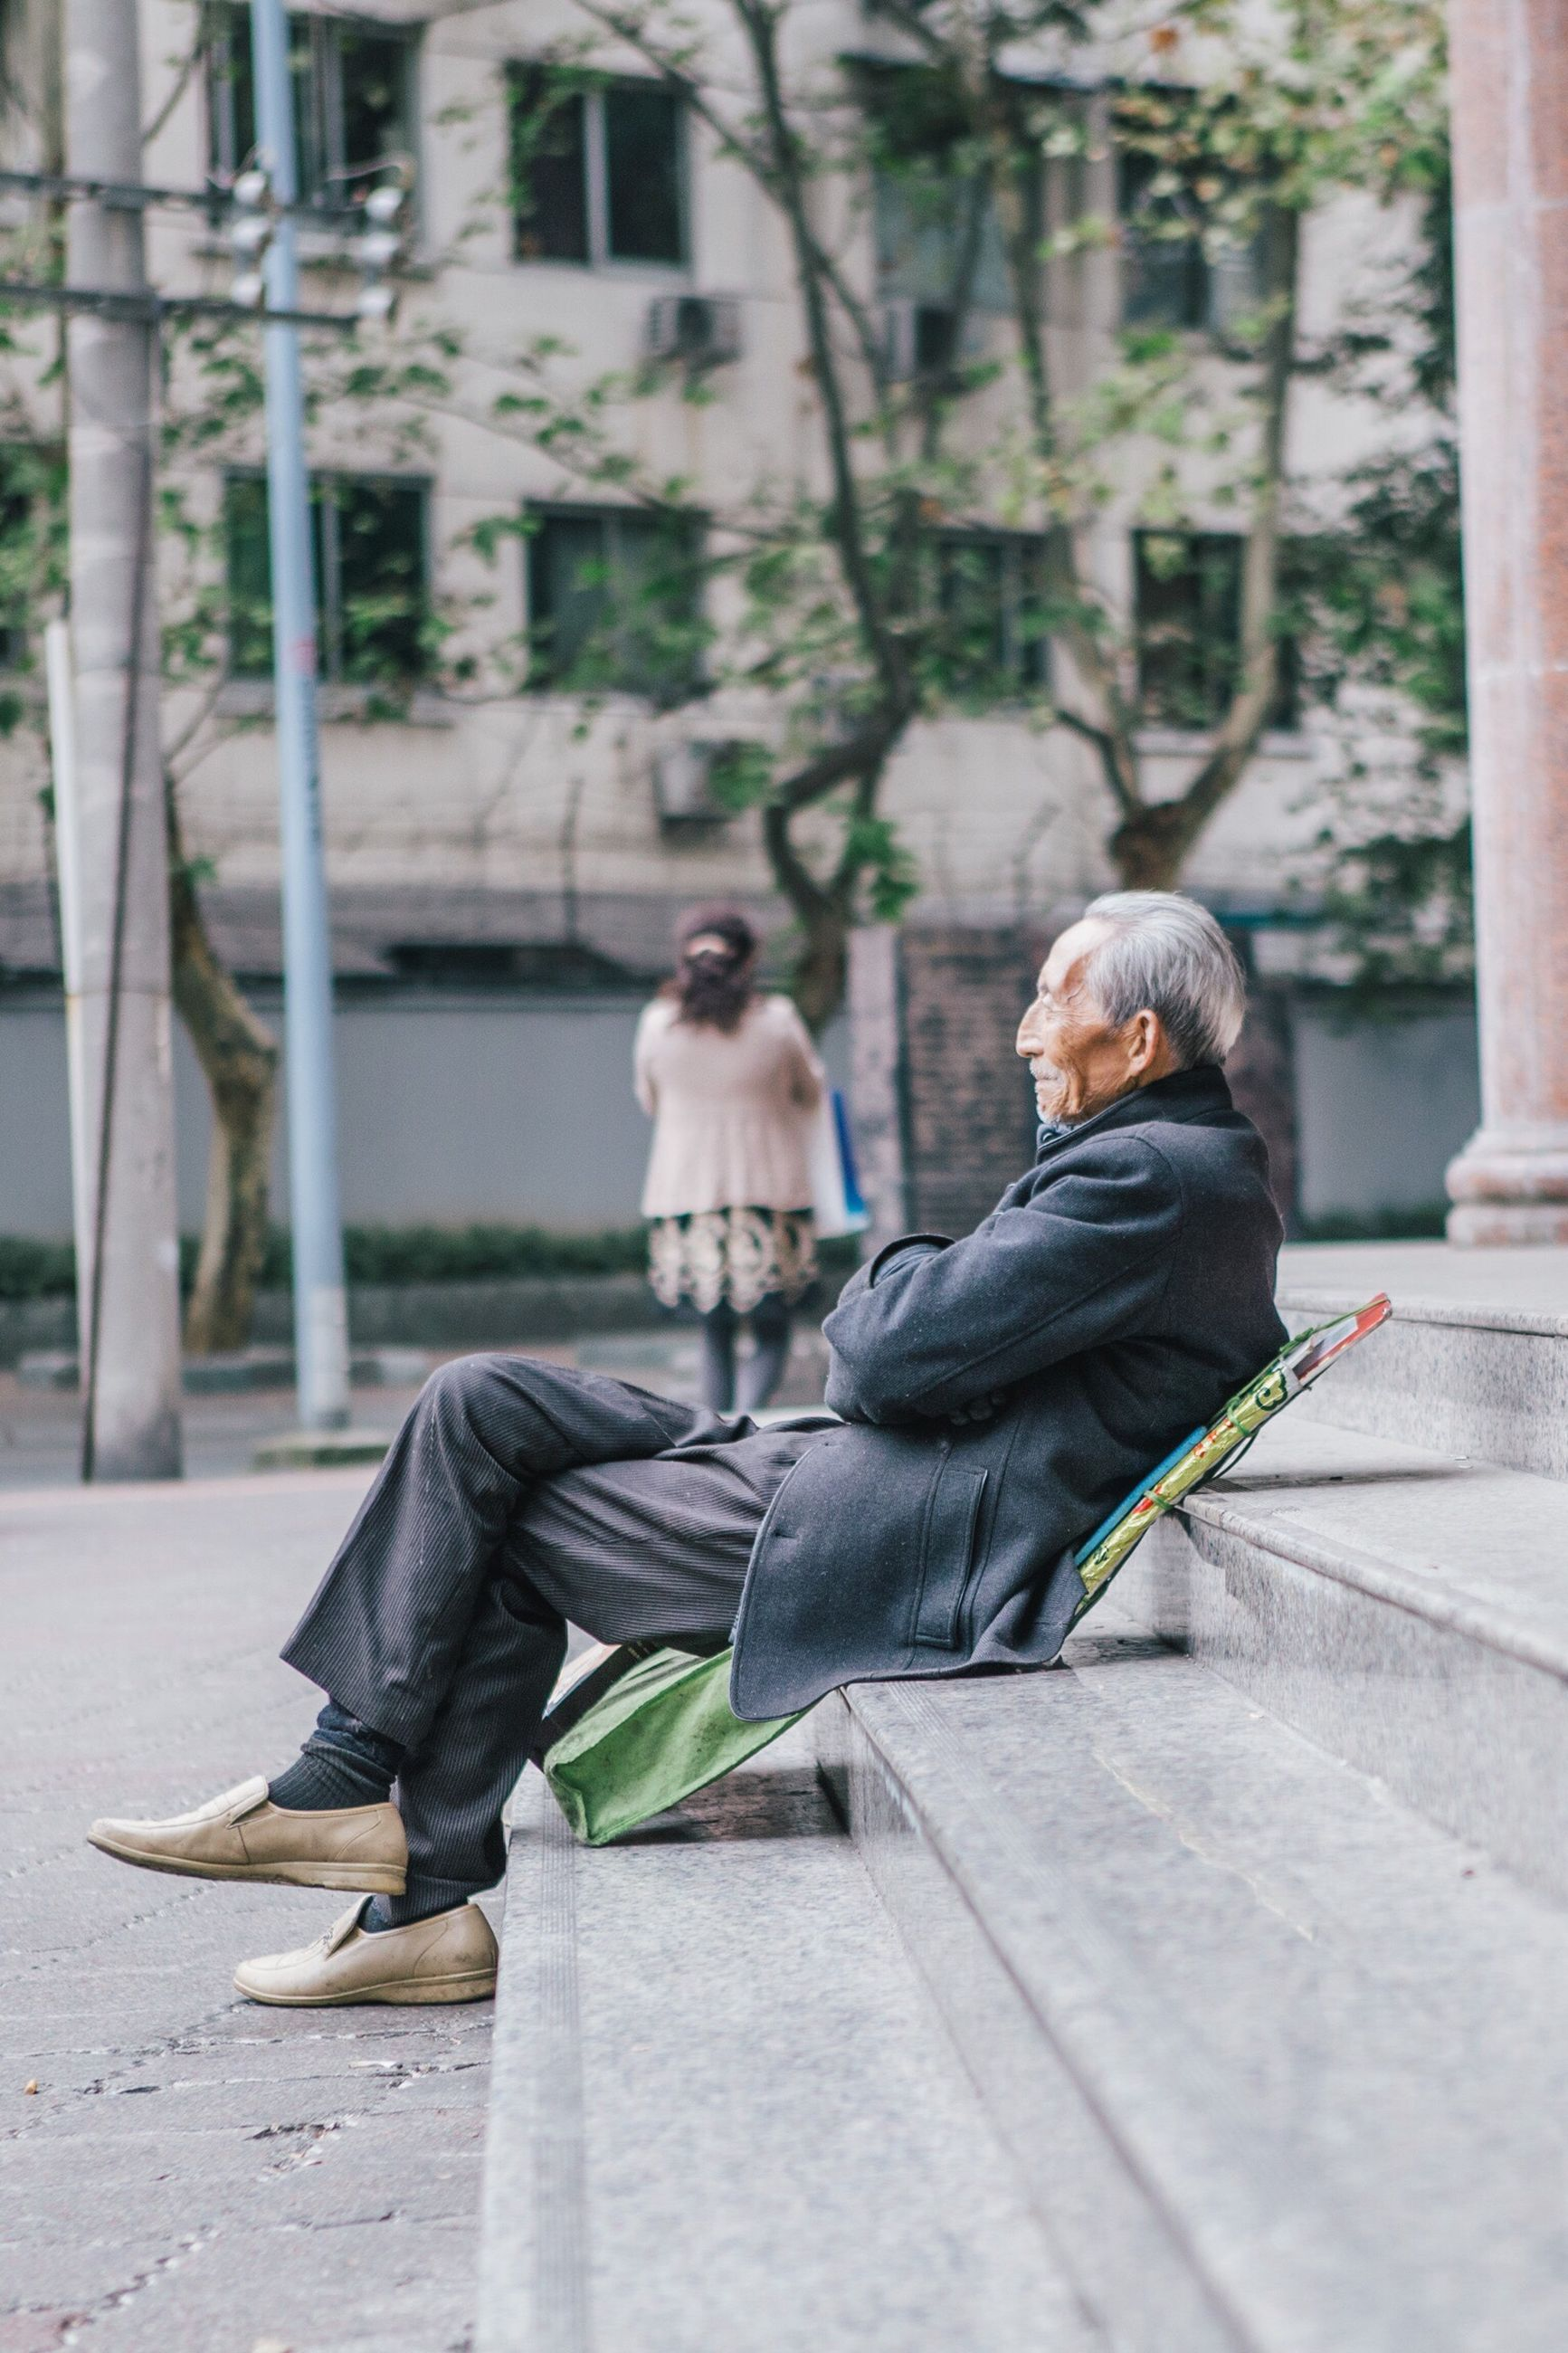 sitting, full length, togetherness, casual clothing, focus on foreground, city, selective focus, person, day, outdoors, city life, park